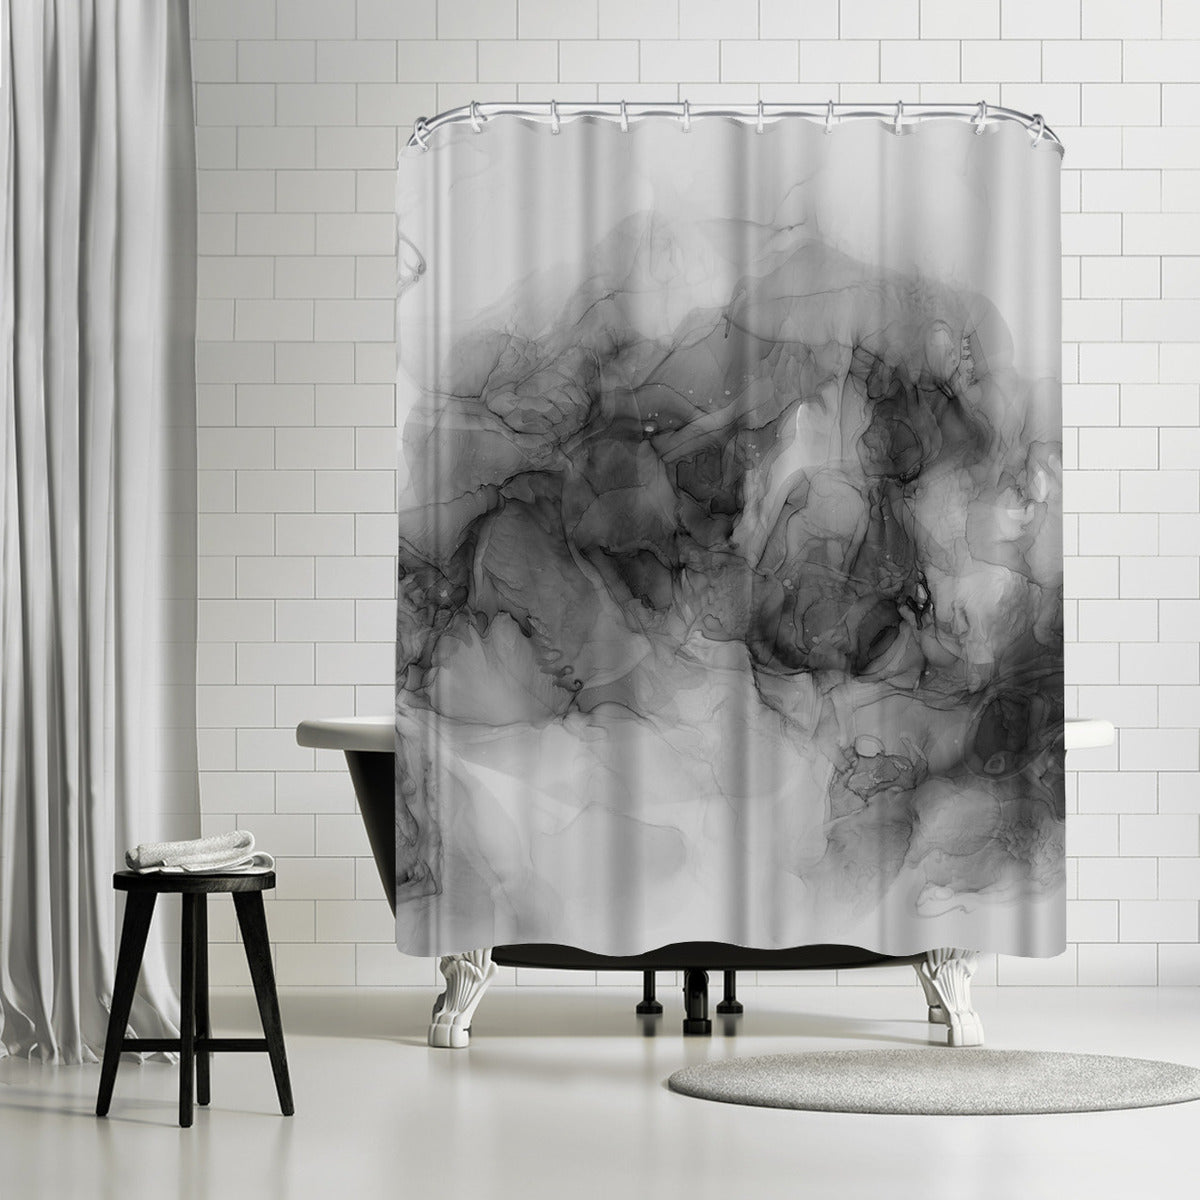 Devine Realm Ii by Emma Thomas Shower Curtain - Shower Curtain - Americanflat